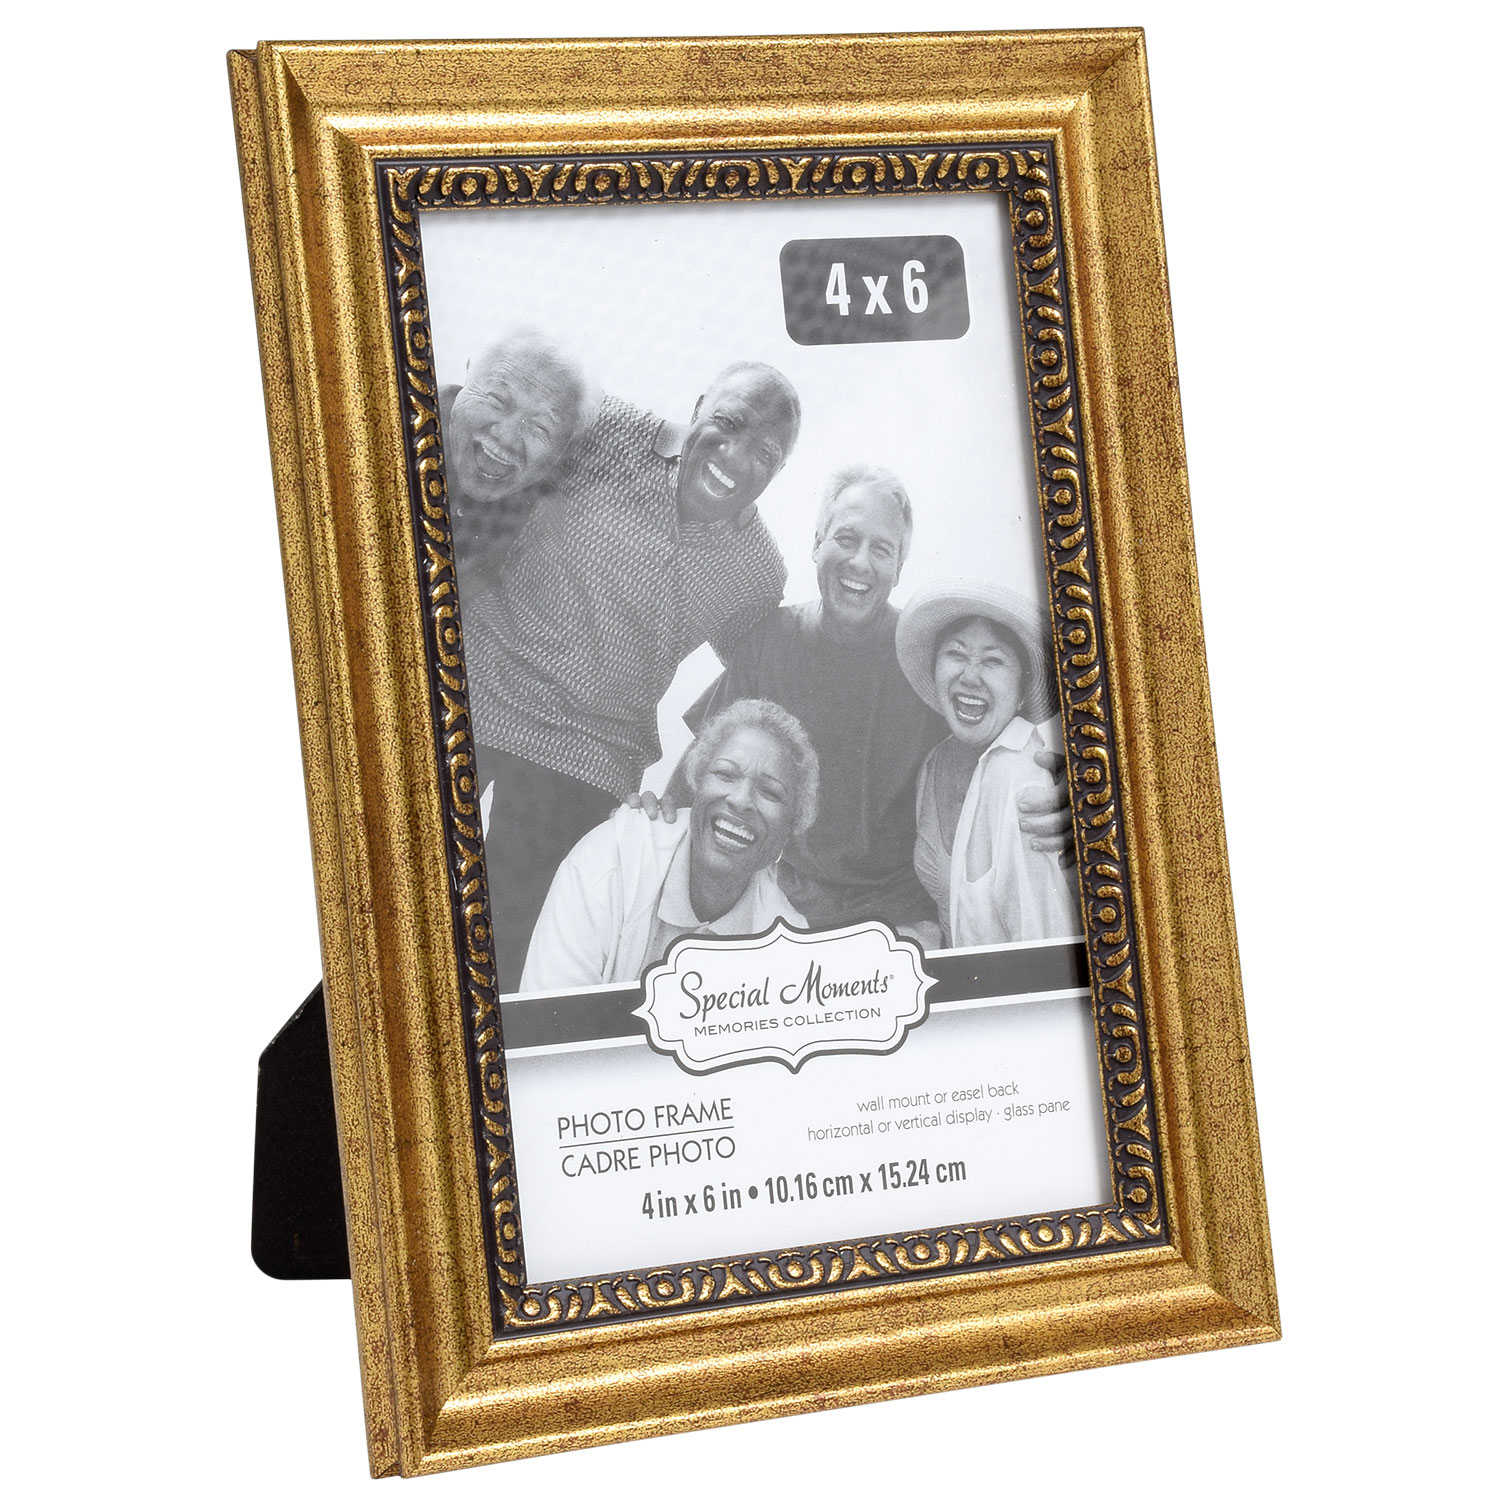 b5c6eb50d86b Special Moments Etched Inner Edge Gold Plastic Photo Frames